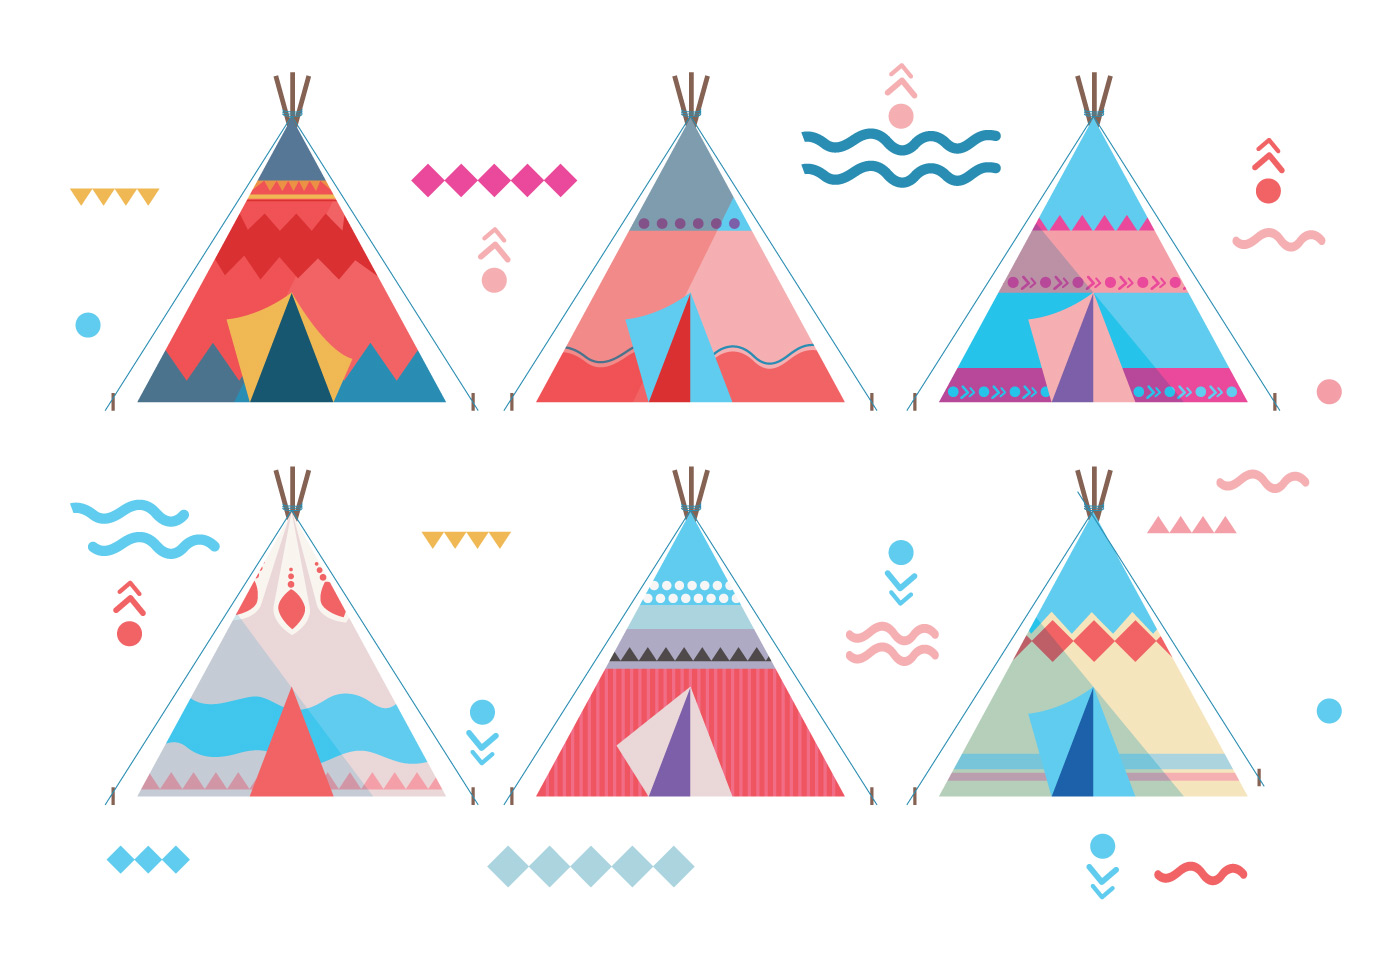 teepee vectors download free vector art stock graphics images. Black Bedroom Furniture Sets. Home Design Ideas